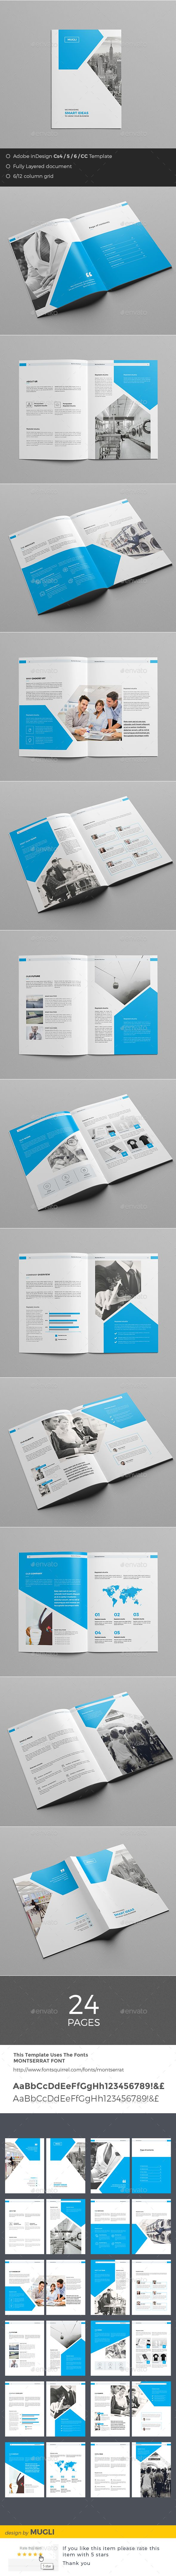 Corporate Brochure   Corporate brochure, Indesign templates and ...